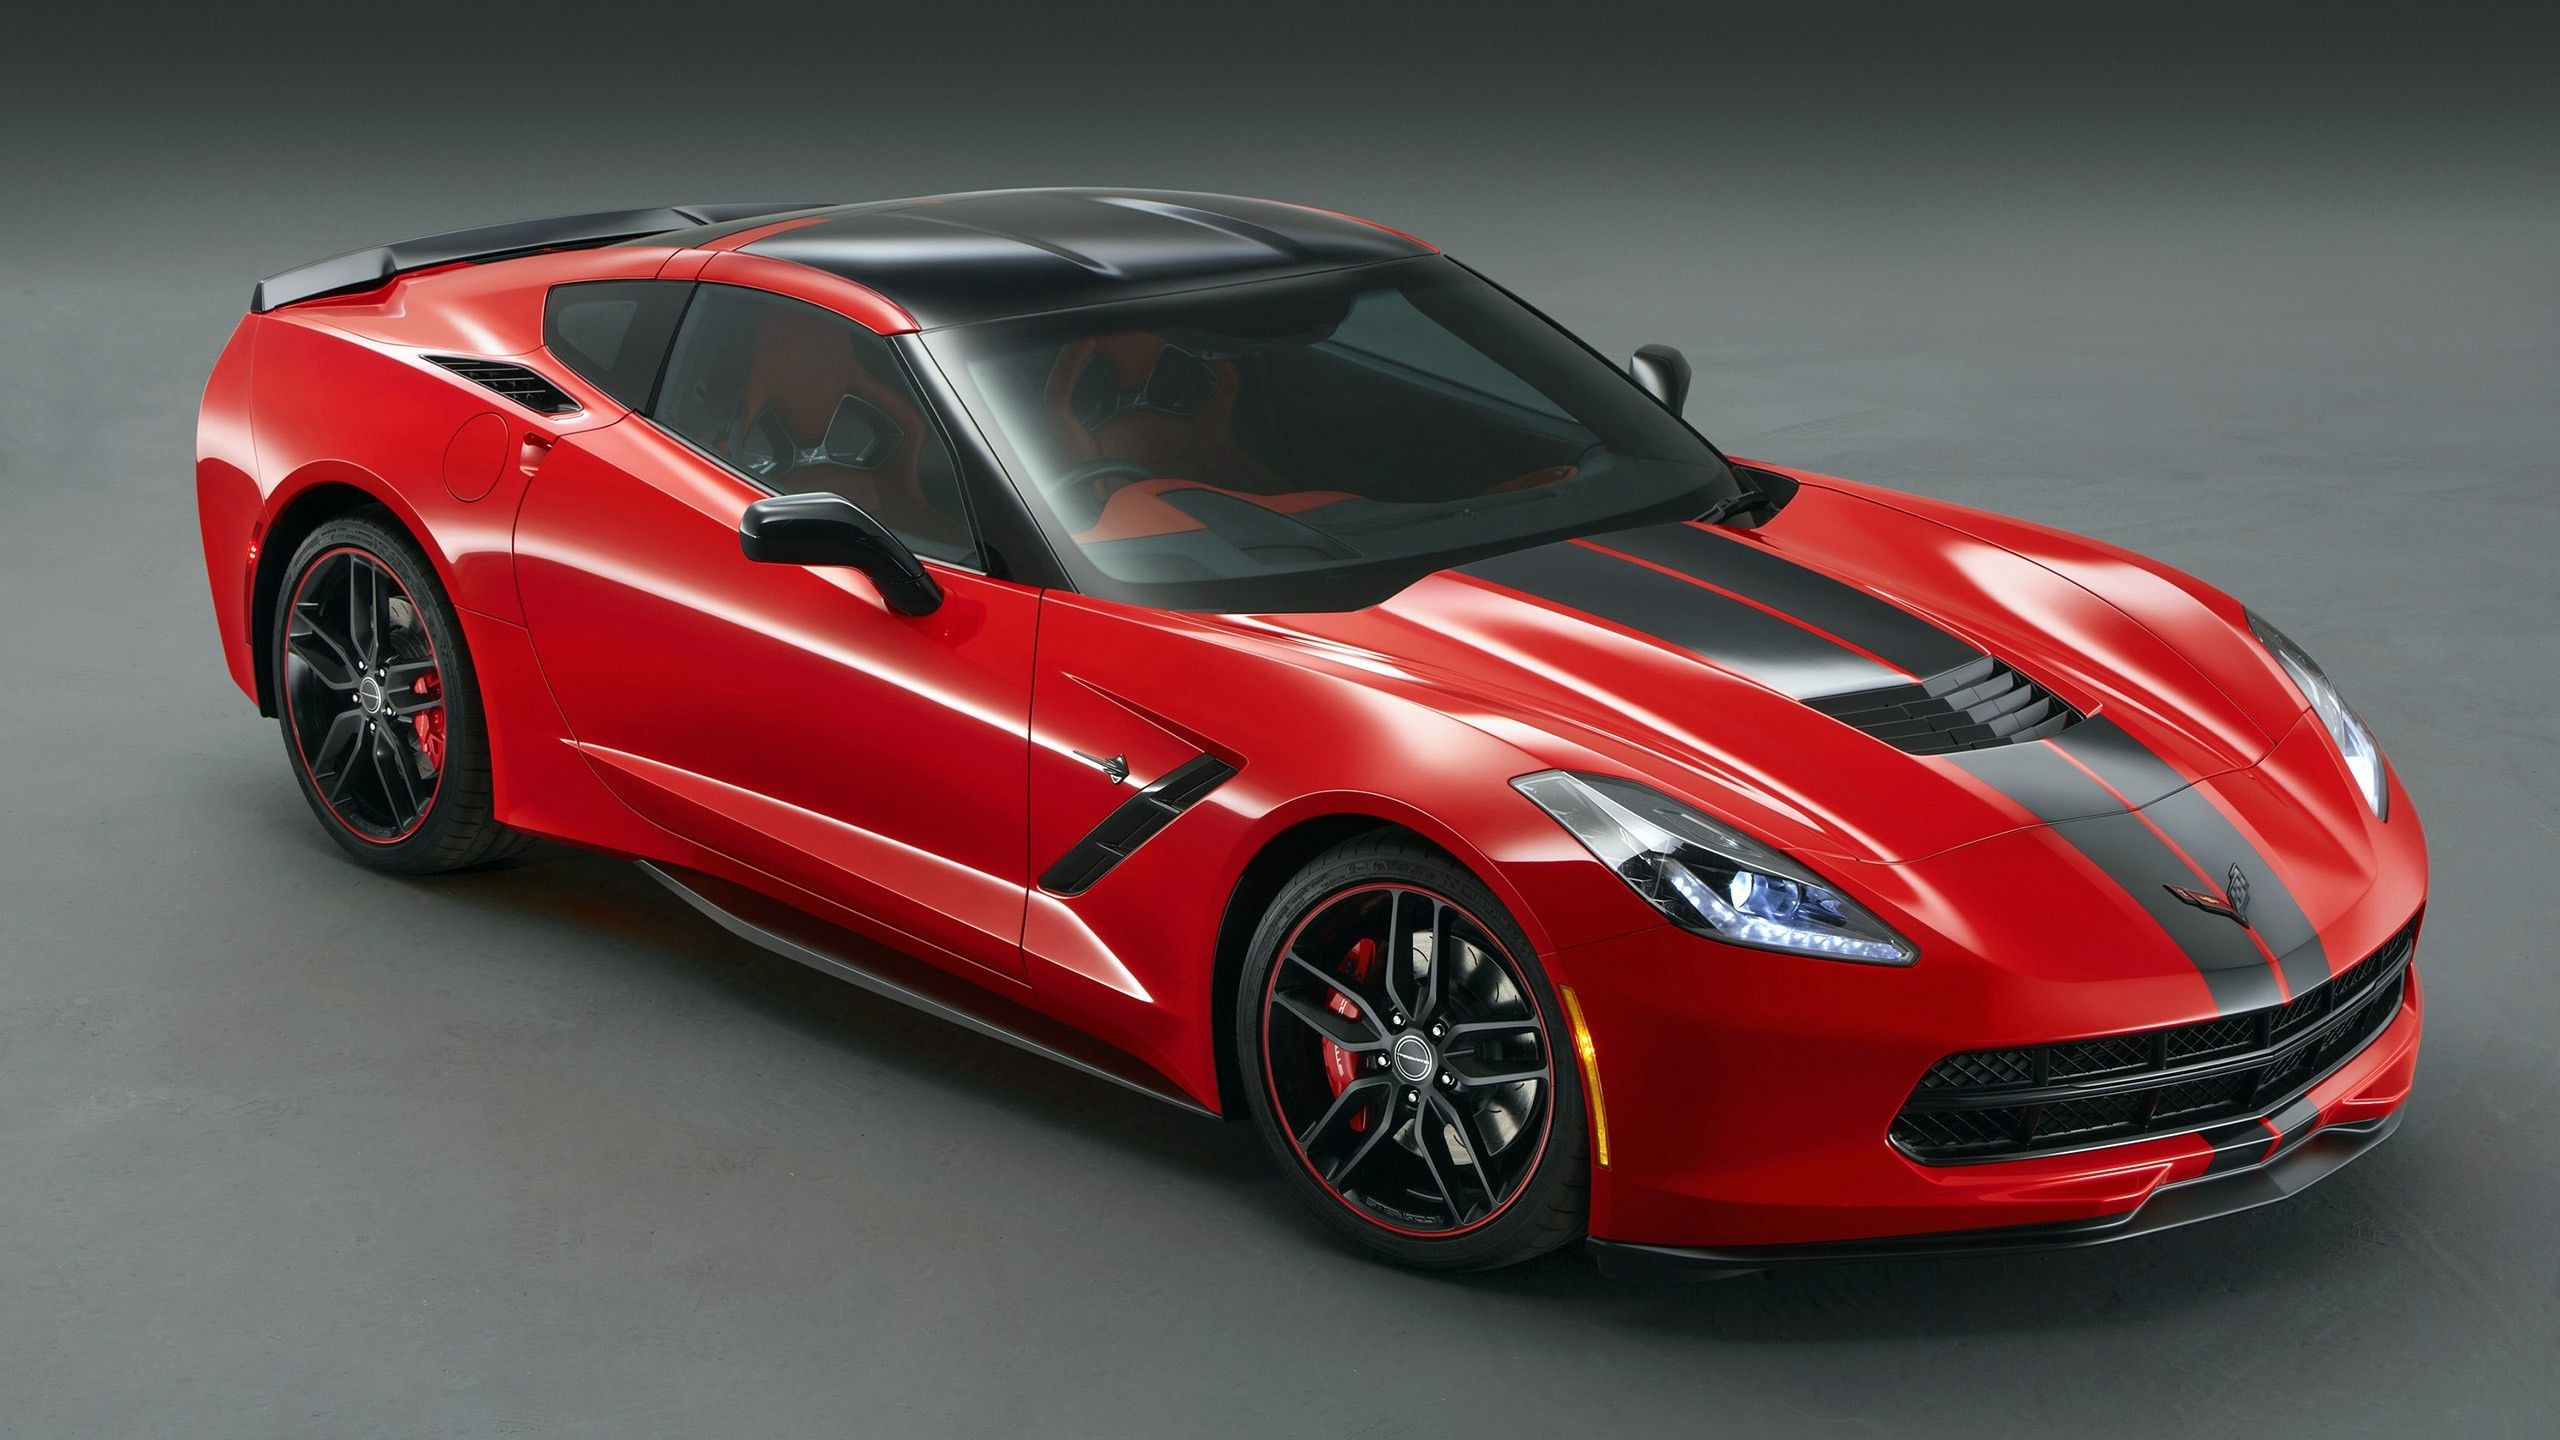 2560x1440 Car Chevrolet Corvette C7 Stingray